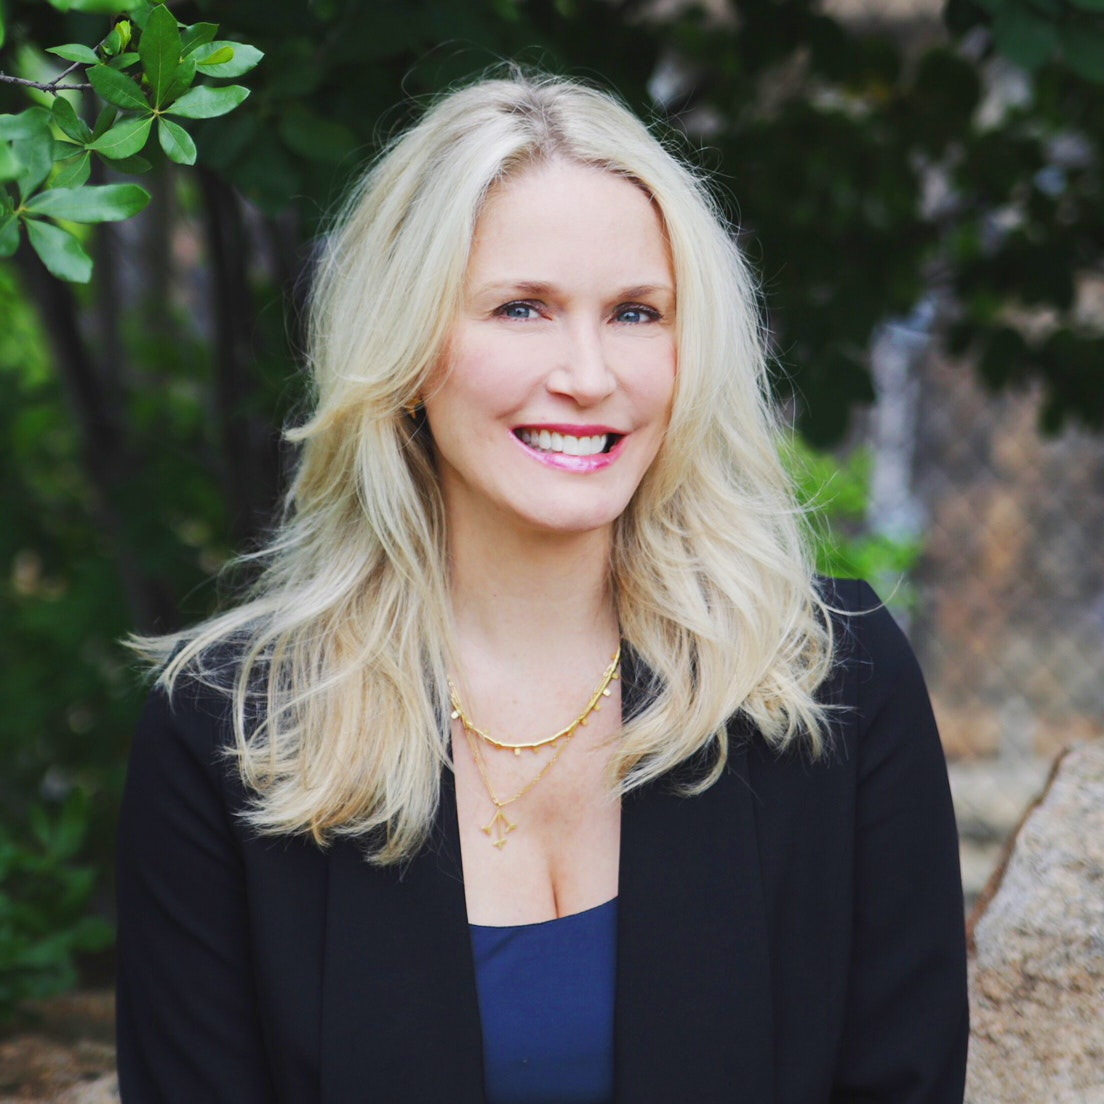 Meet Jillian Wright, Celebrity Esthetician Turned Co-Founder of The Indie Beauty Media Group